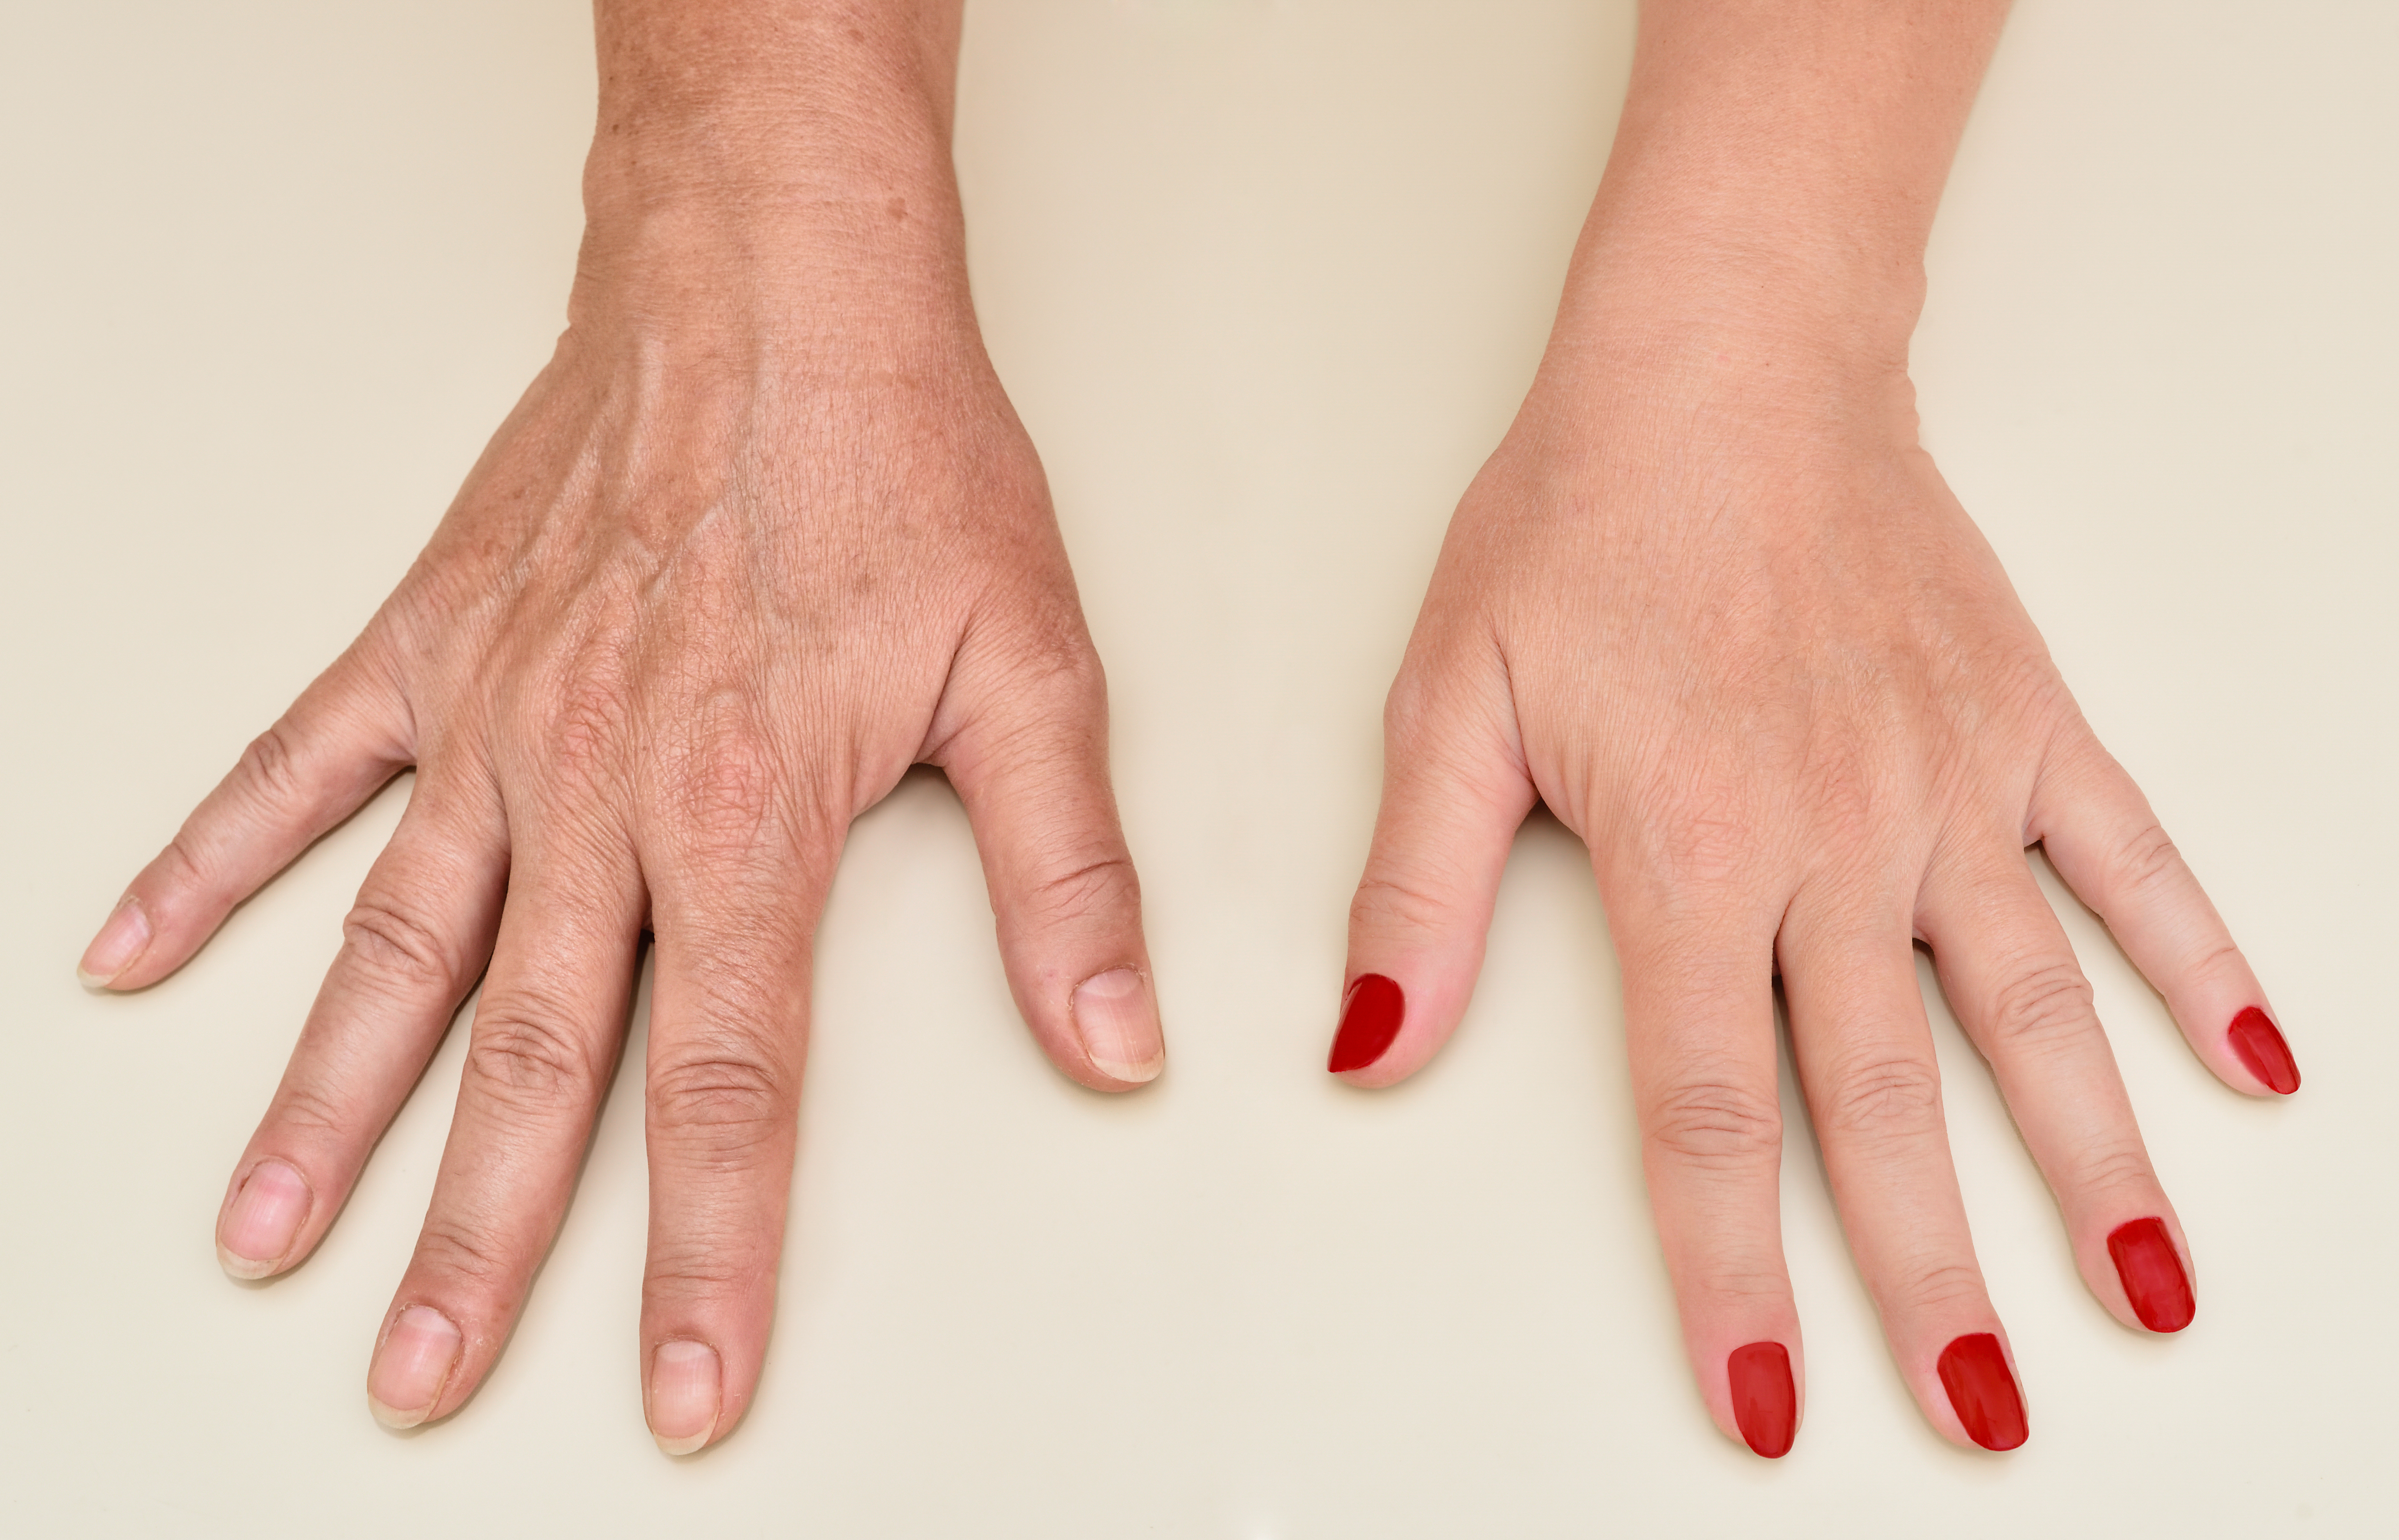 Hand Rejuvenation. Why and how